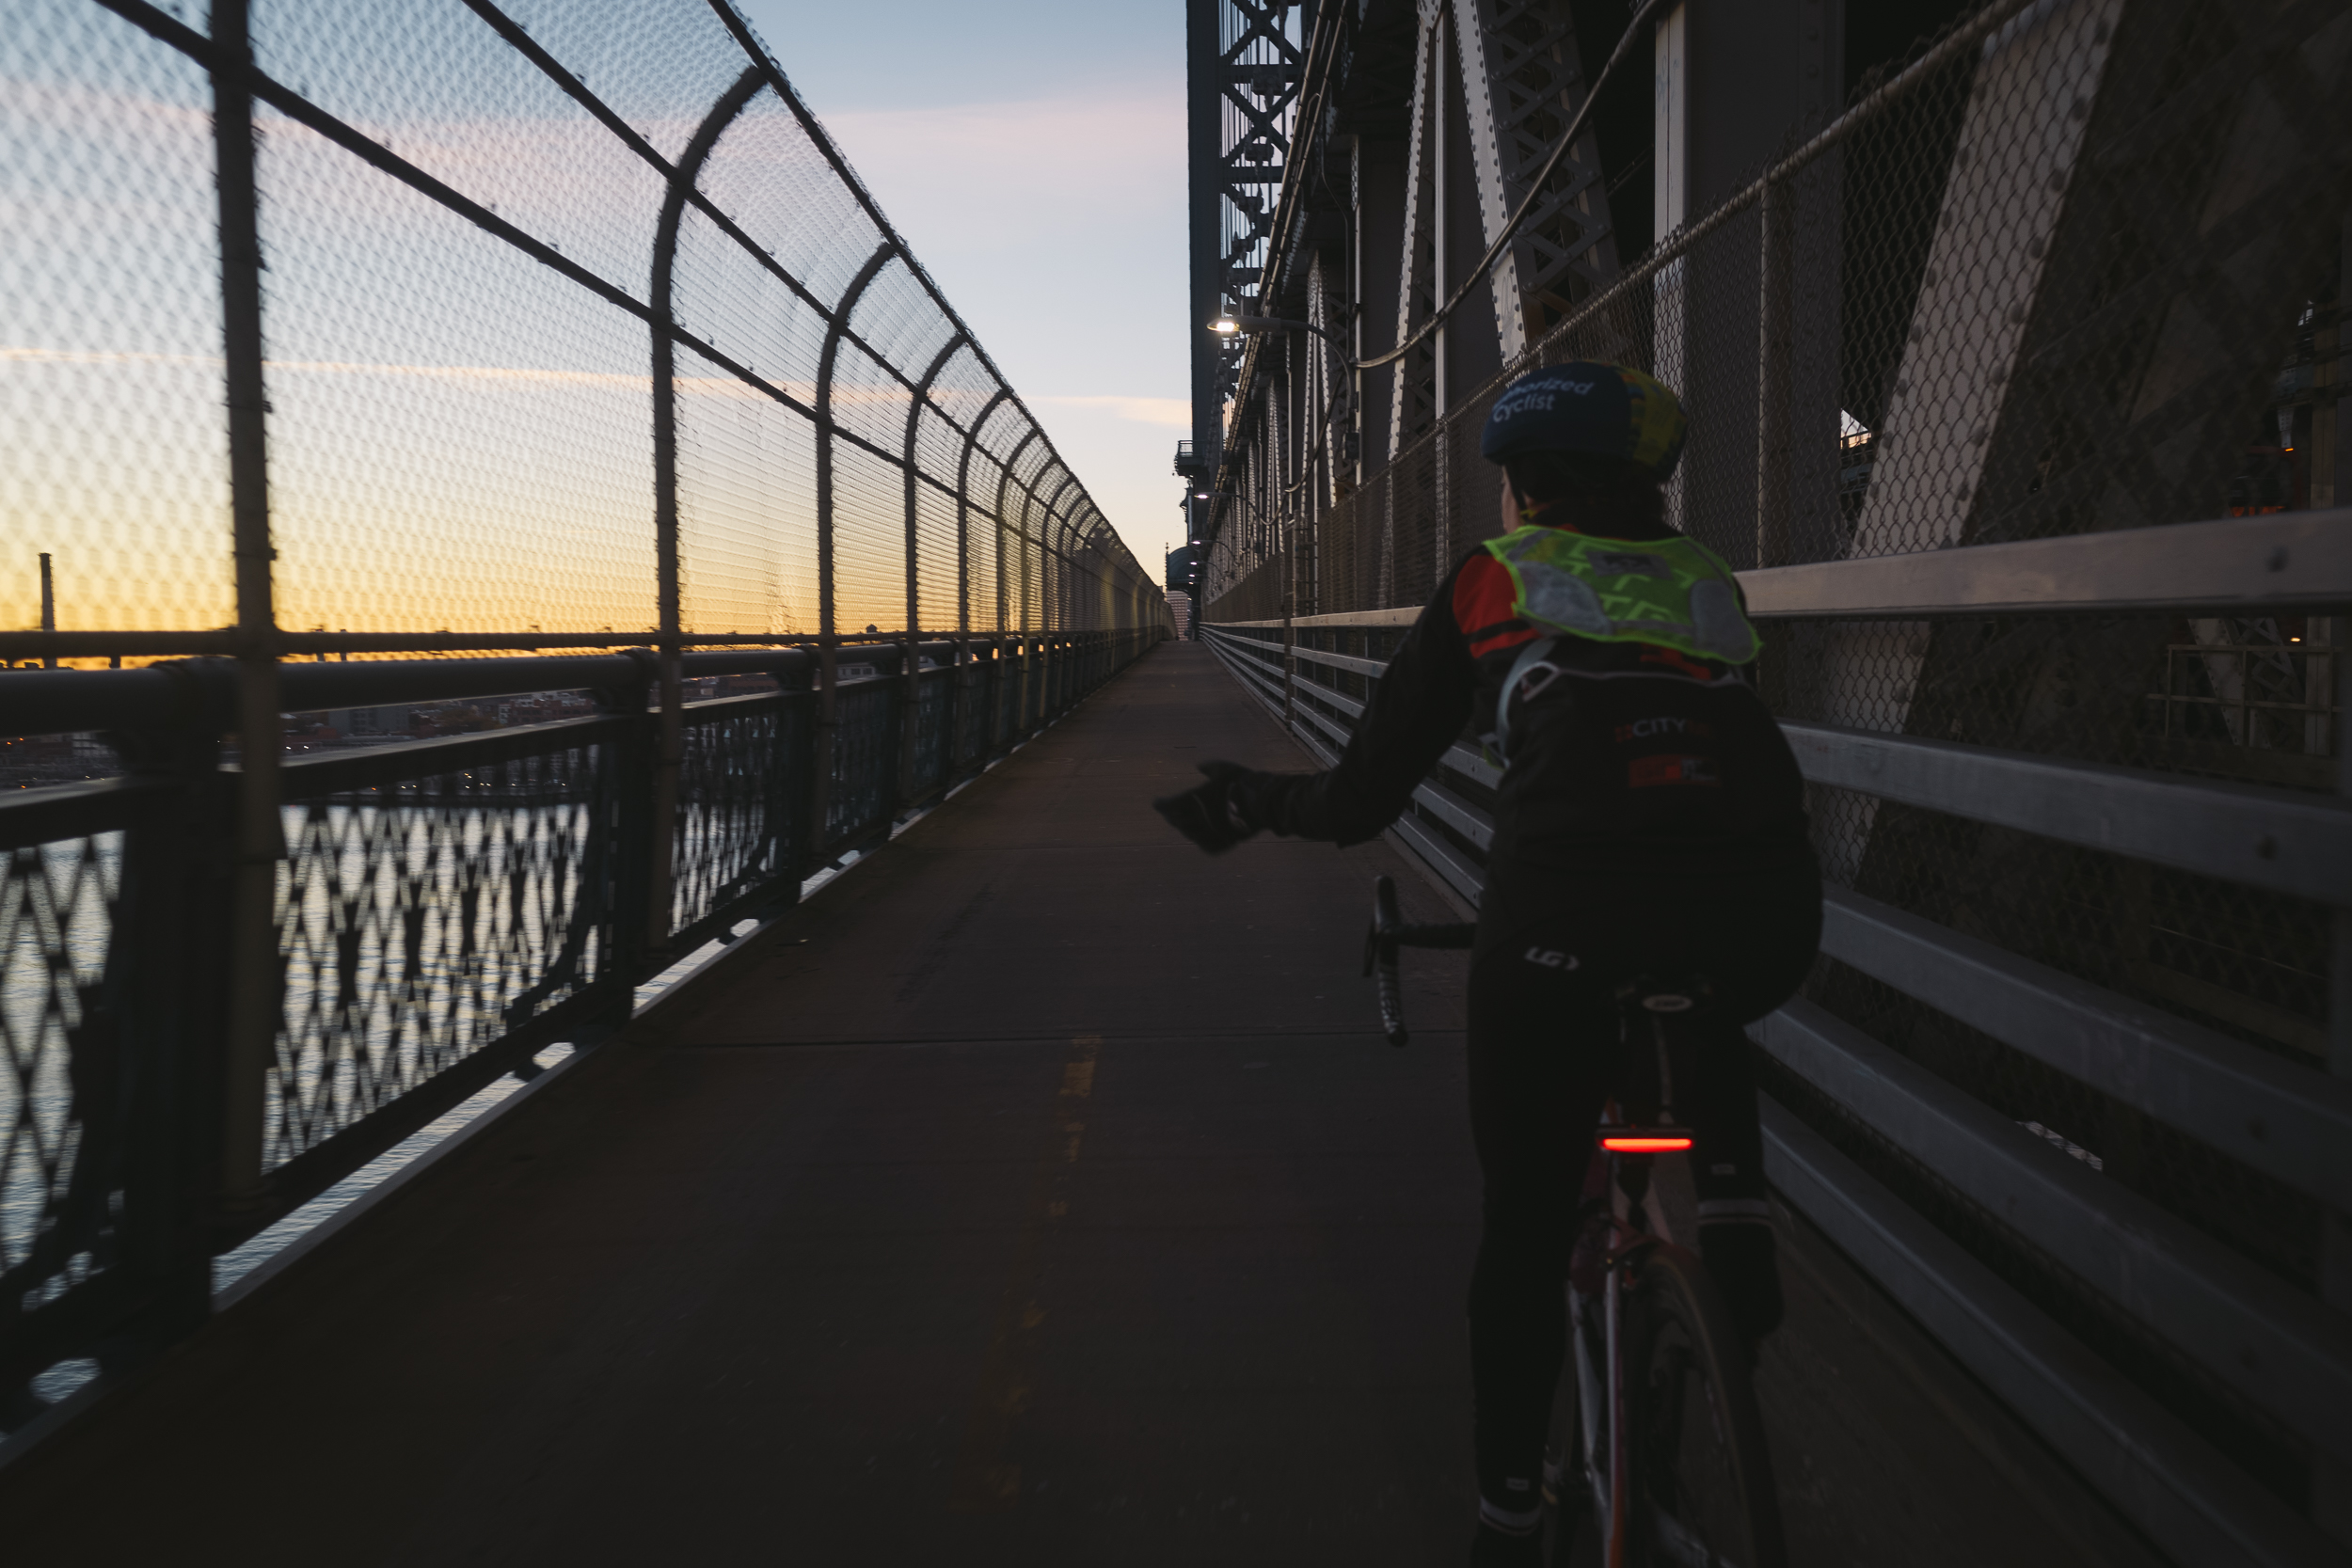 Crossing the Manhattan Bridge at sunrise feels familiar after plenty of early Prospect Park races